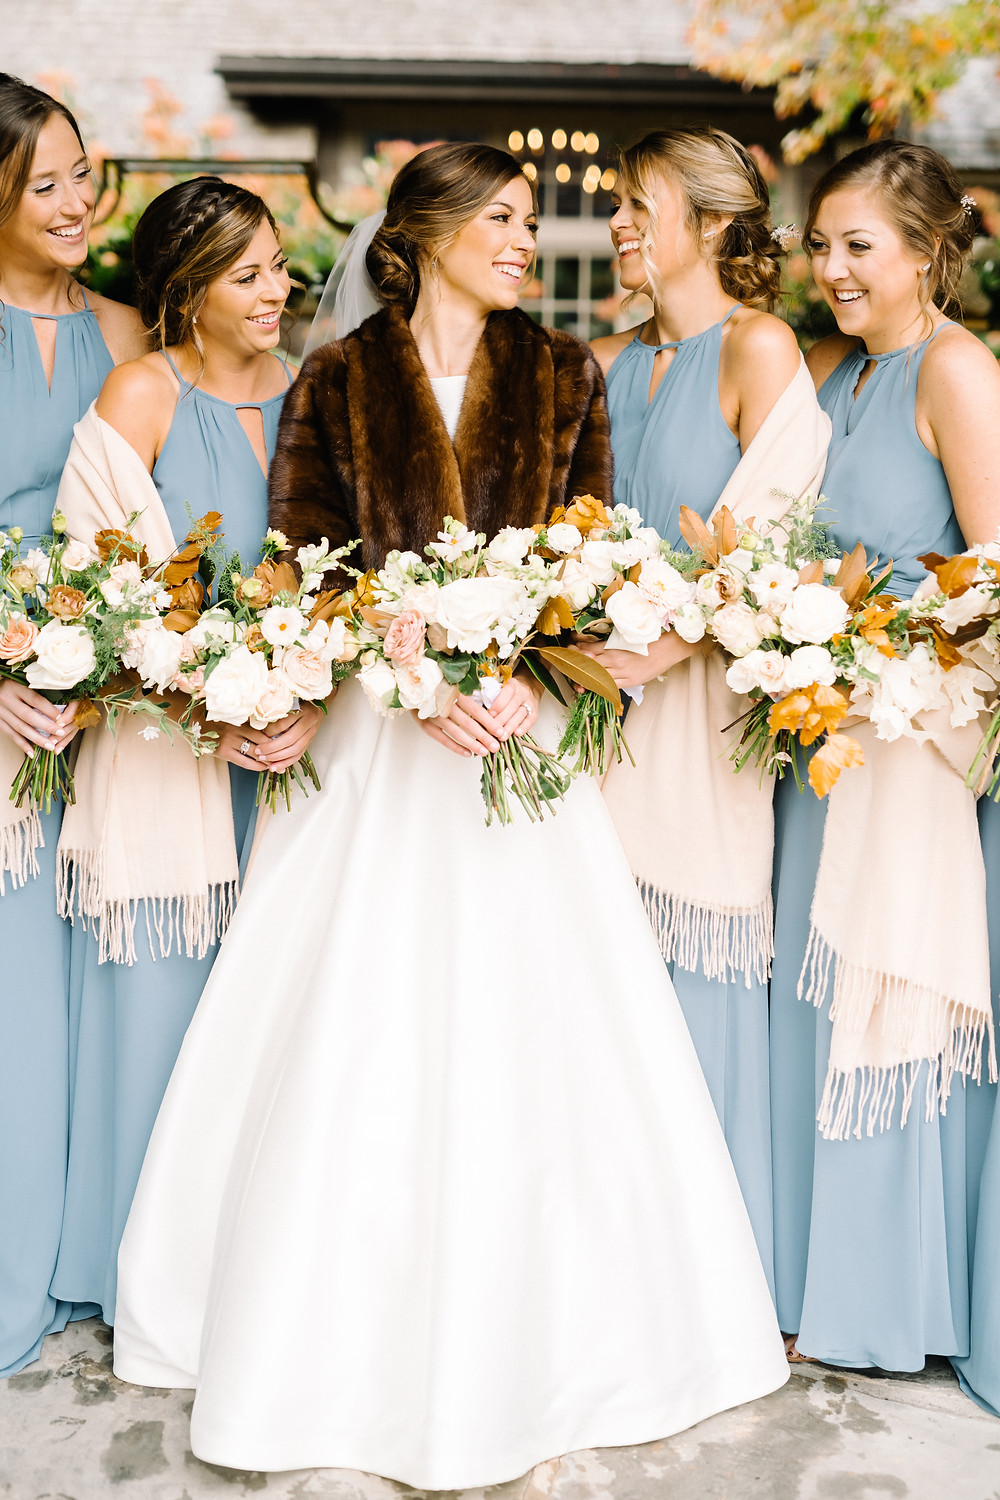 bride and bridesmaids highlands nc wedding